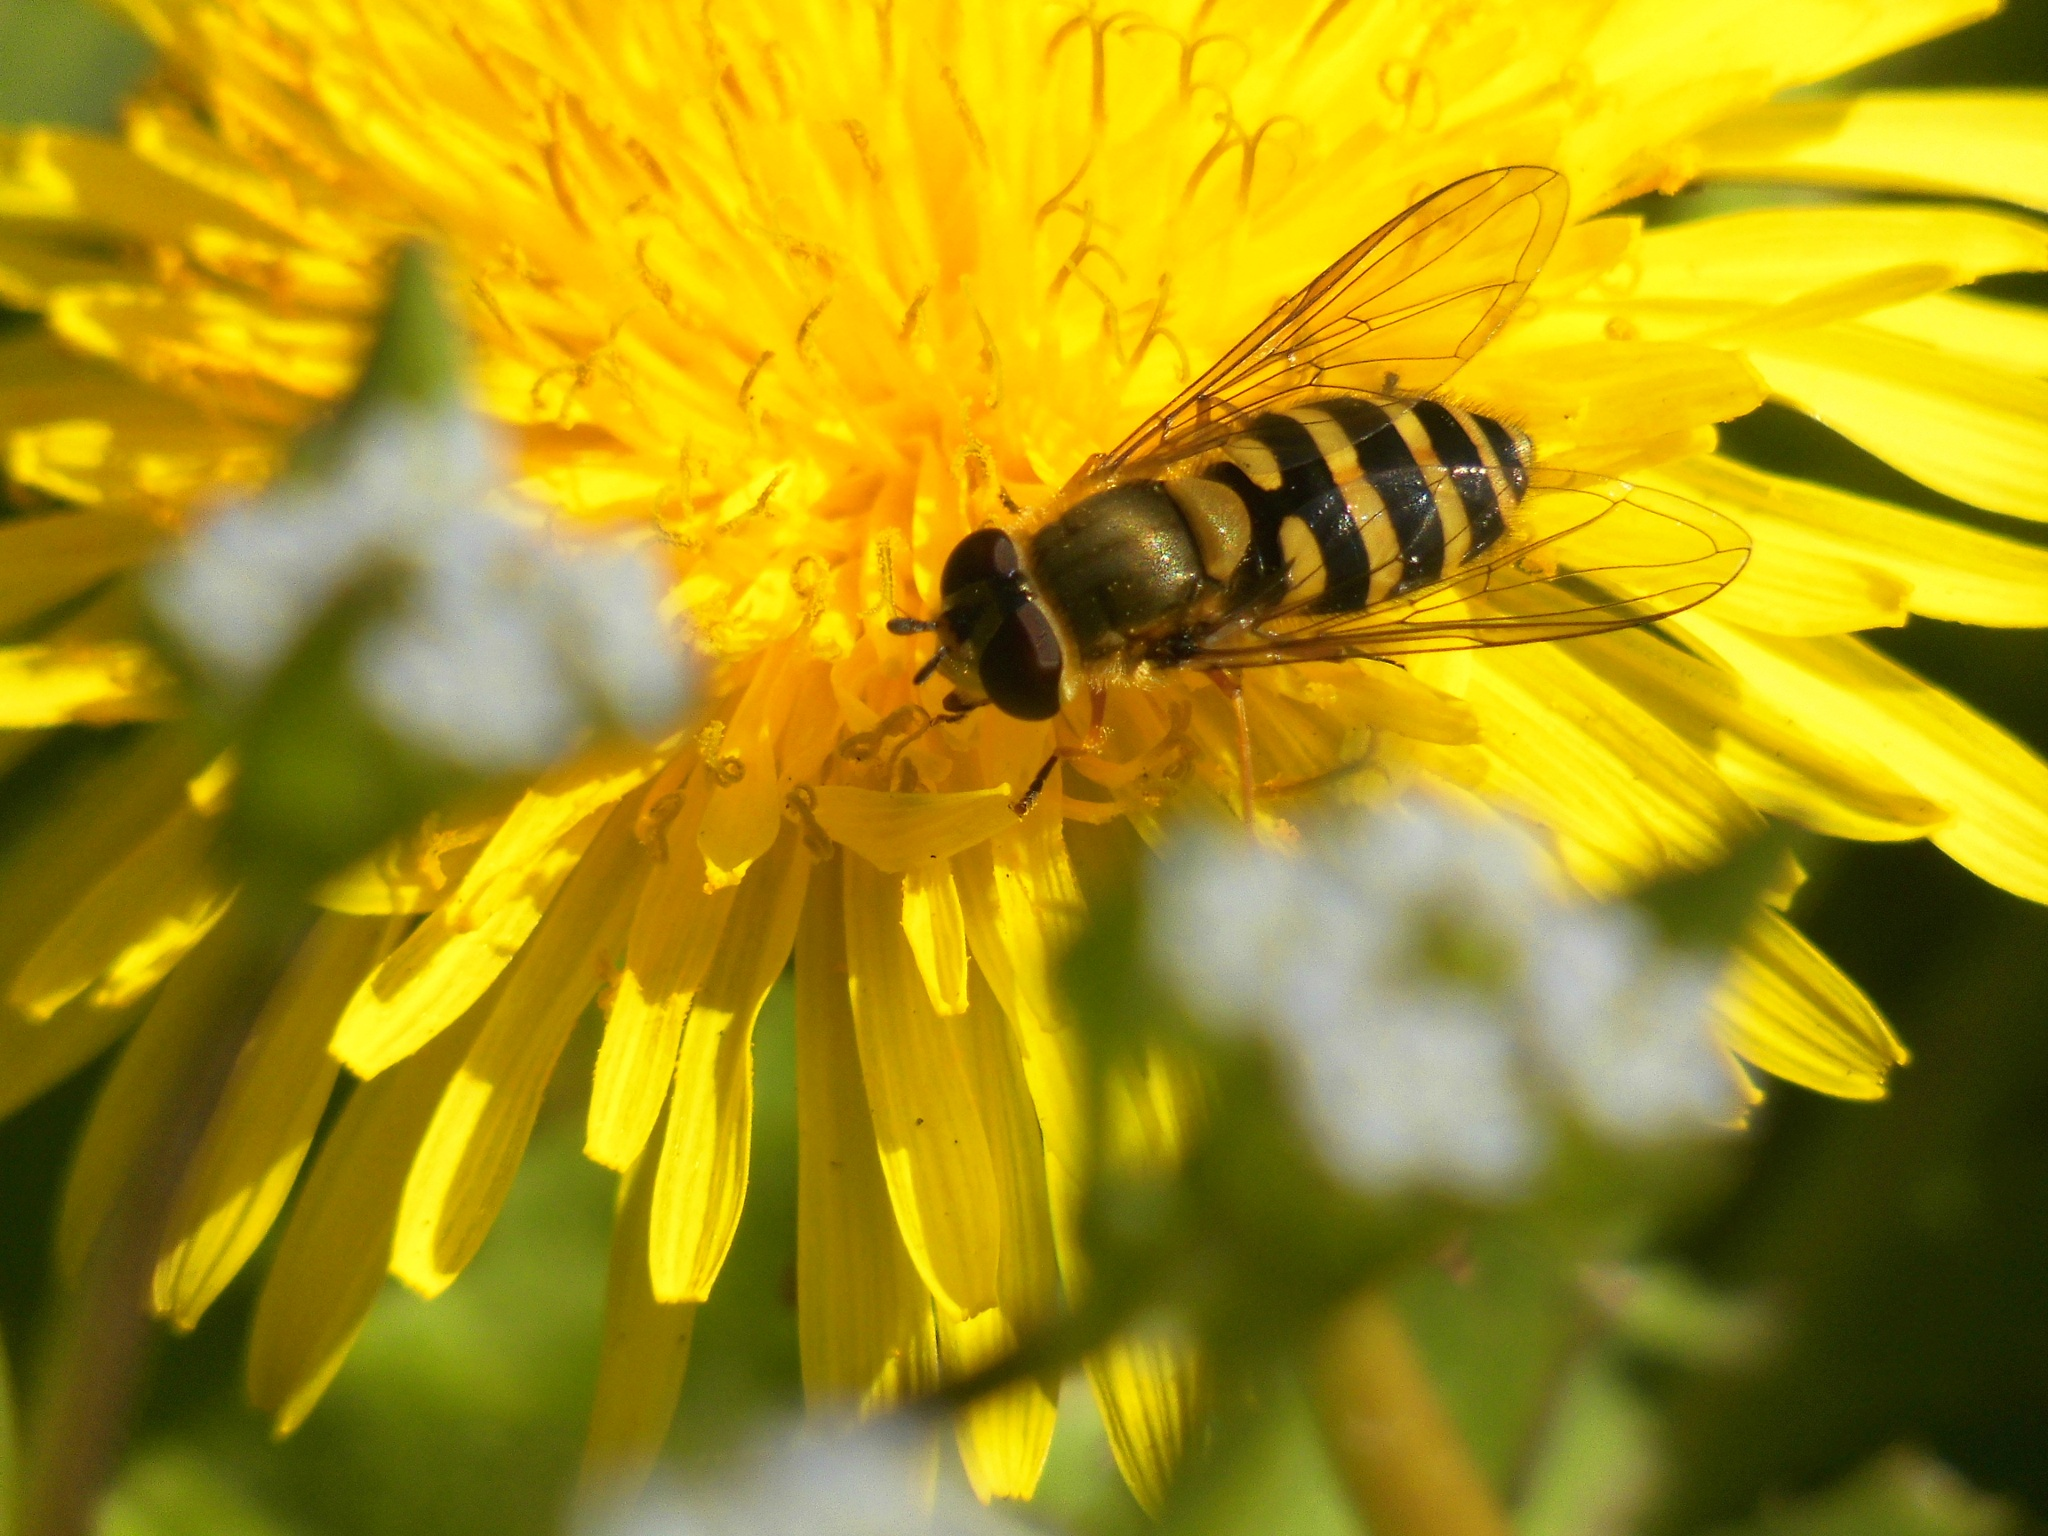 Hoverfly on a Dandelion by Sallyw